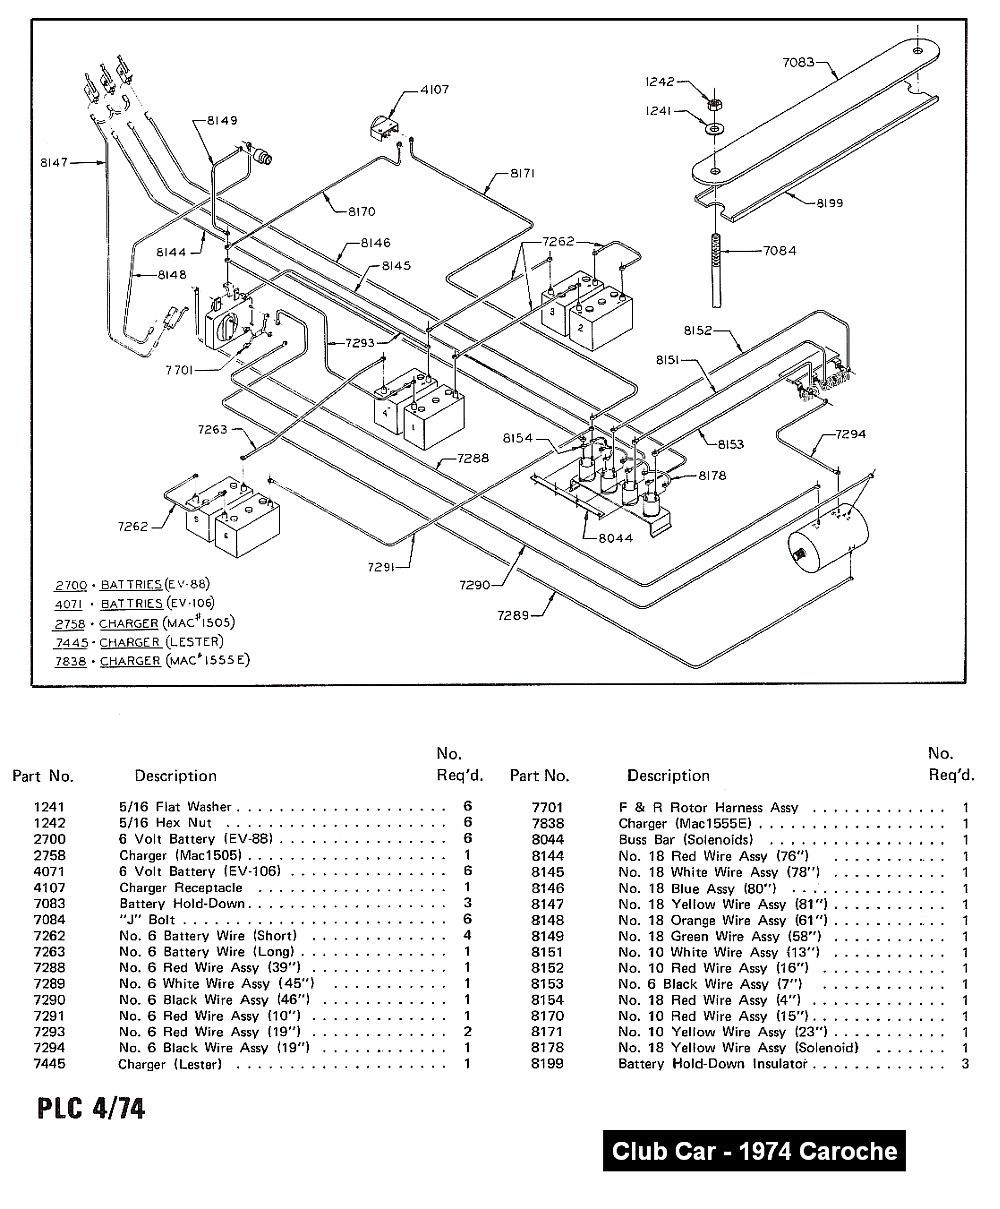 36 volt club car wiring diagram golf cart club car golf cart parts diagram | automotive parts ...